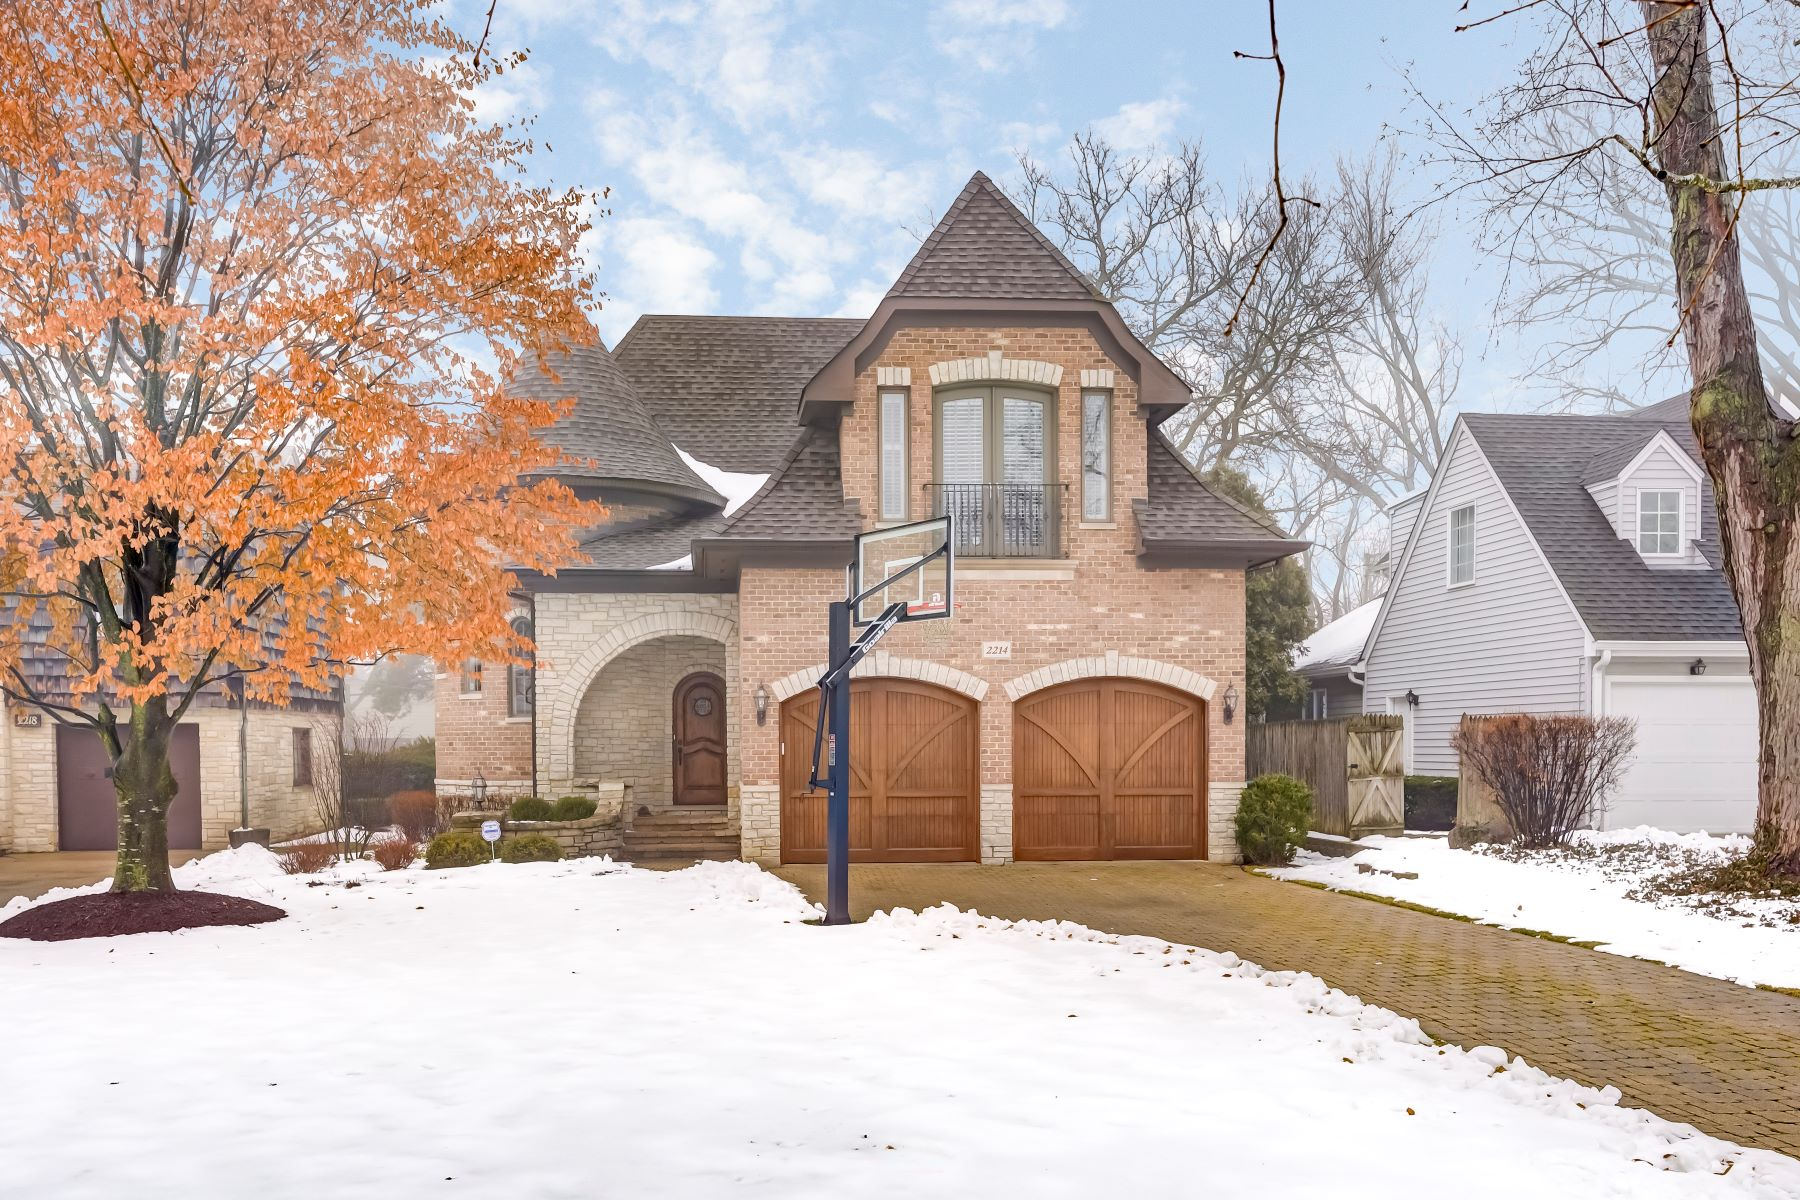 Single Family Homes for Active at Great Curb Appeal 2214 Birchwood Avenue Wilmette, Illinois 60091 United States